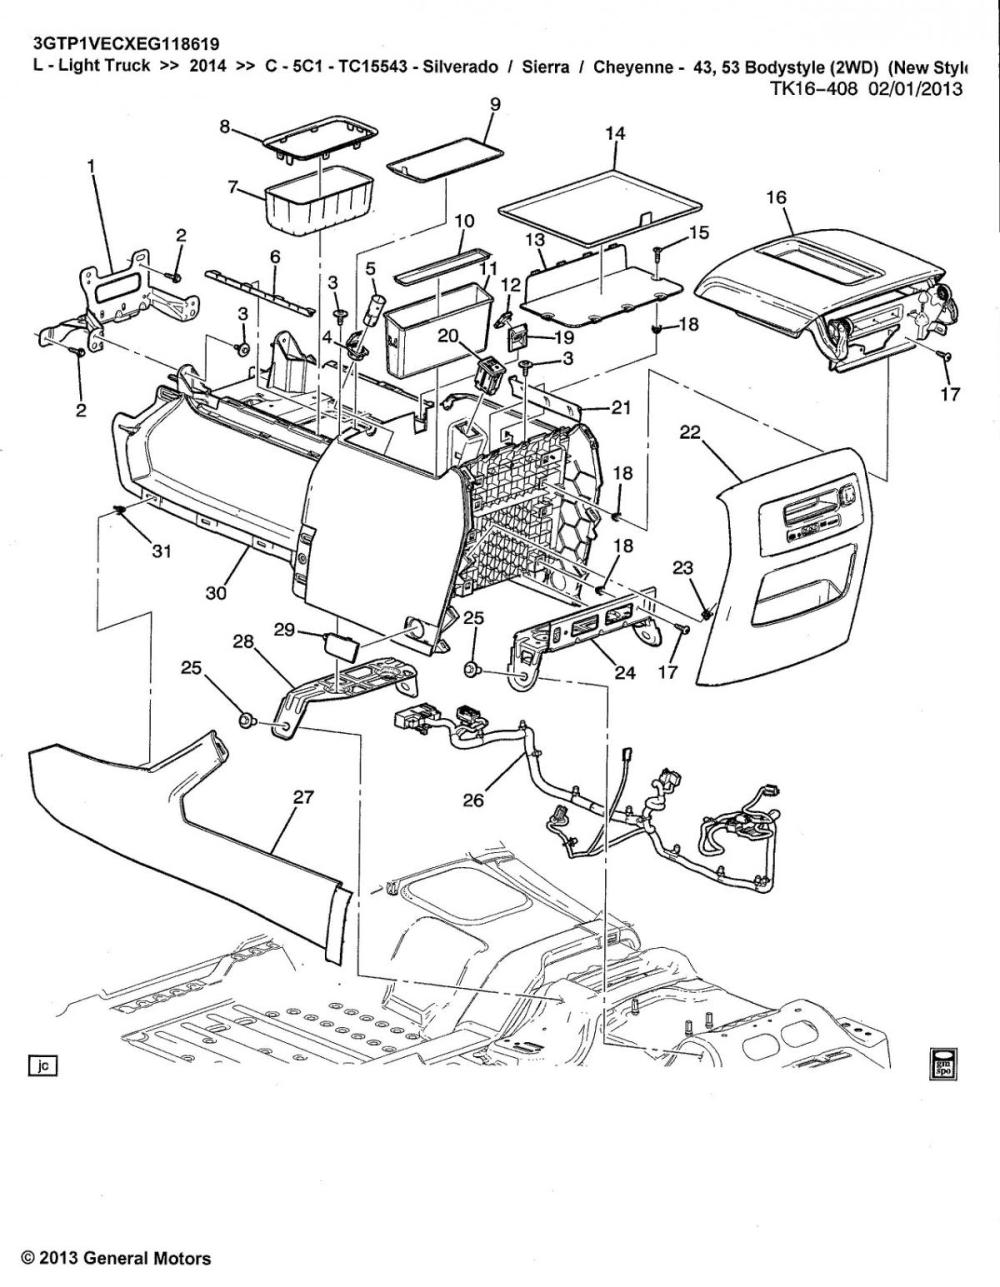 medium resolution of 2007 gmc sierra engine diagram electrical schematic wiring diagram 2007 gmc sierra engine diagram 2007 gmc sierra engine diagram